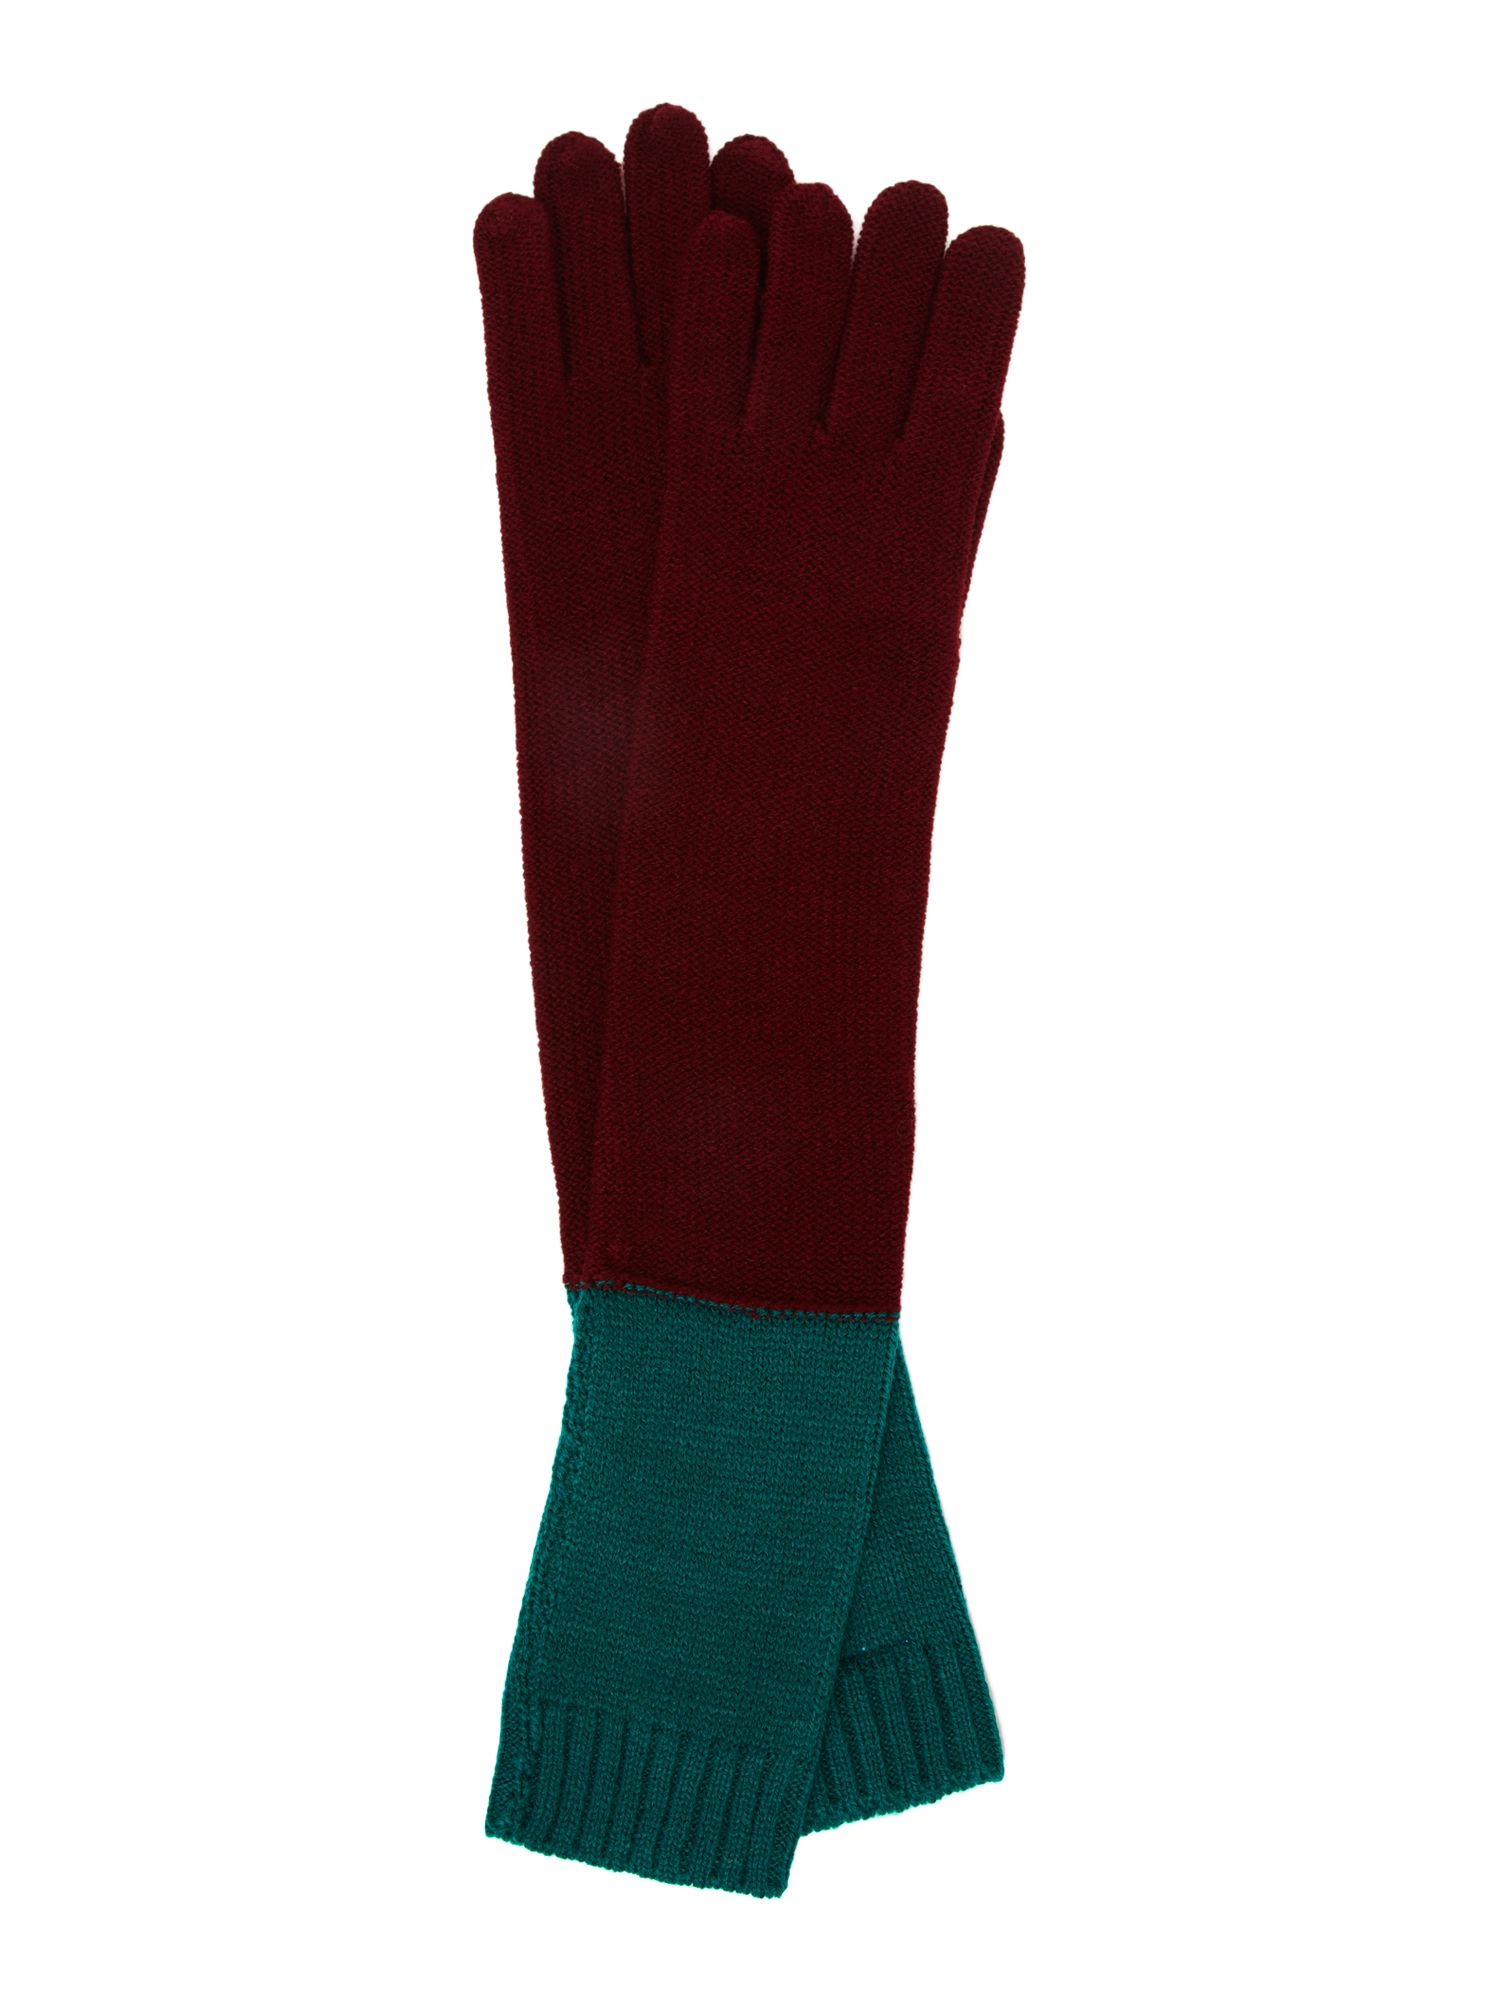 Colour-block glove